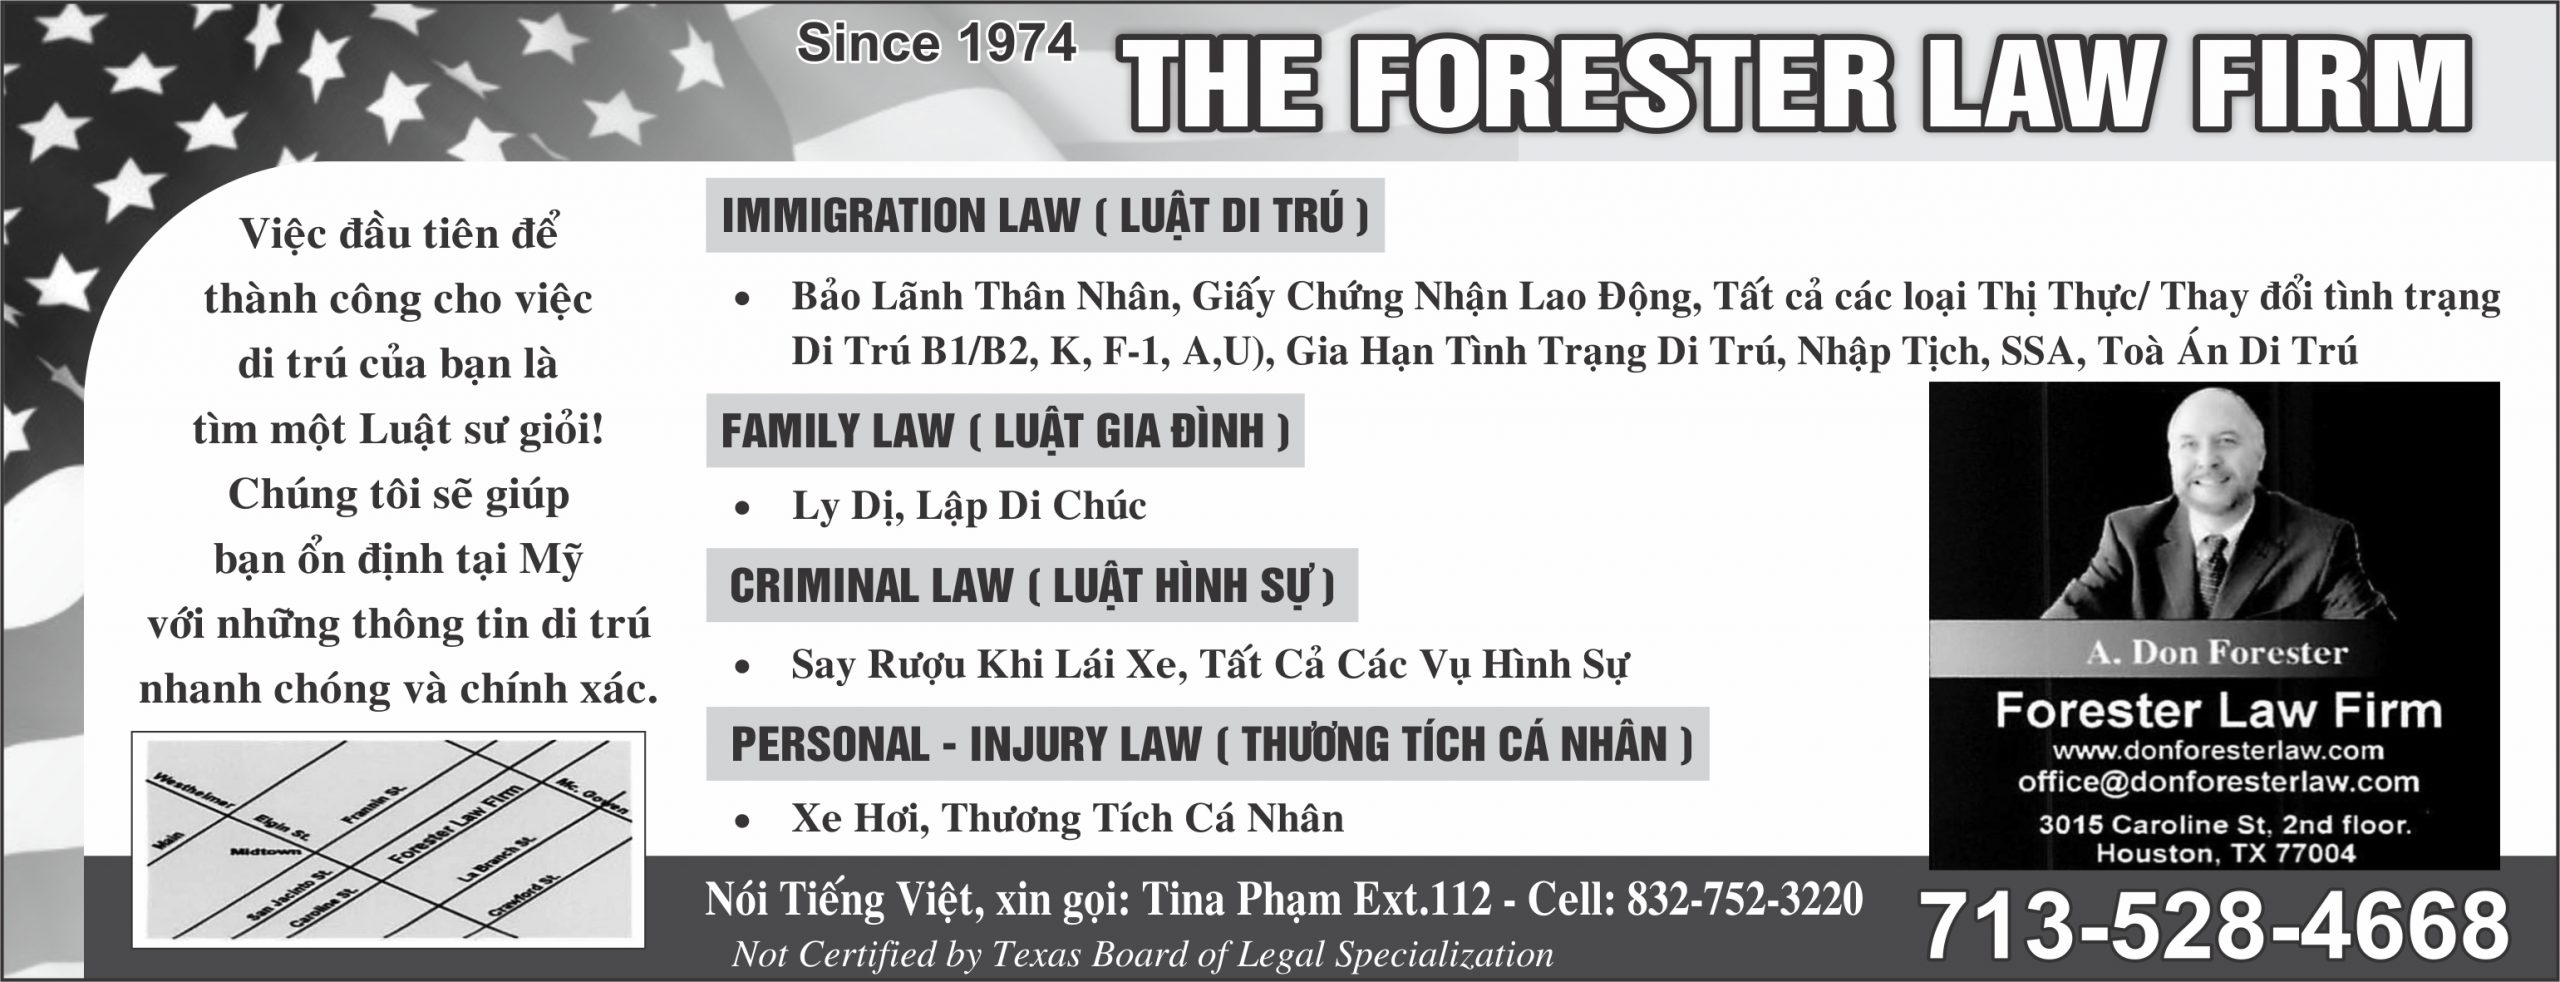 FORESTER LAW FIRM